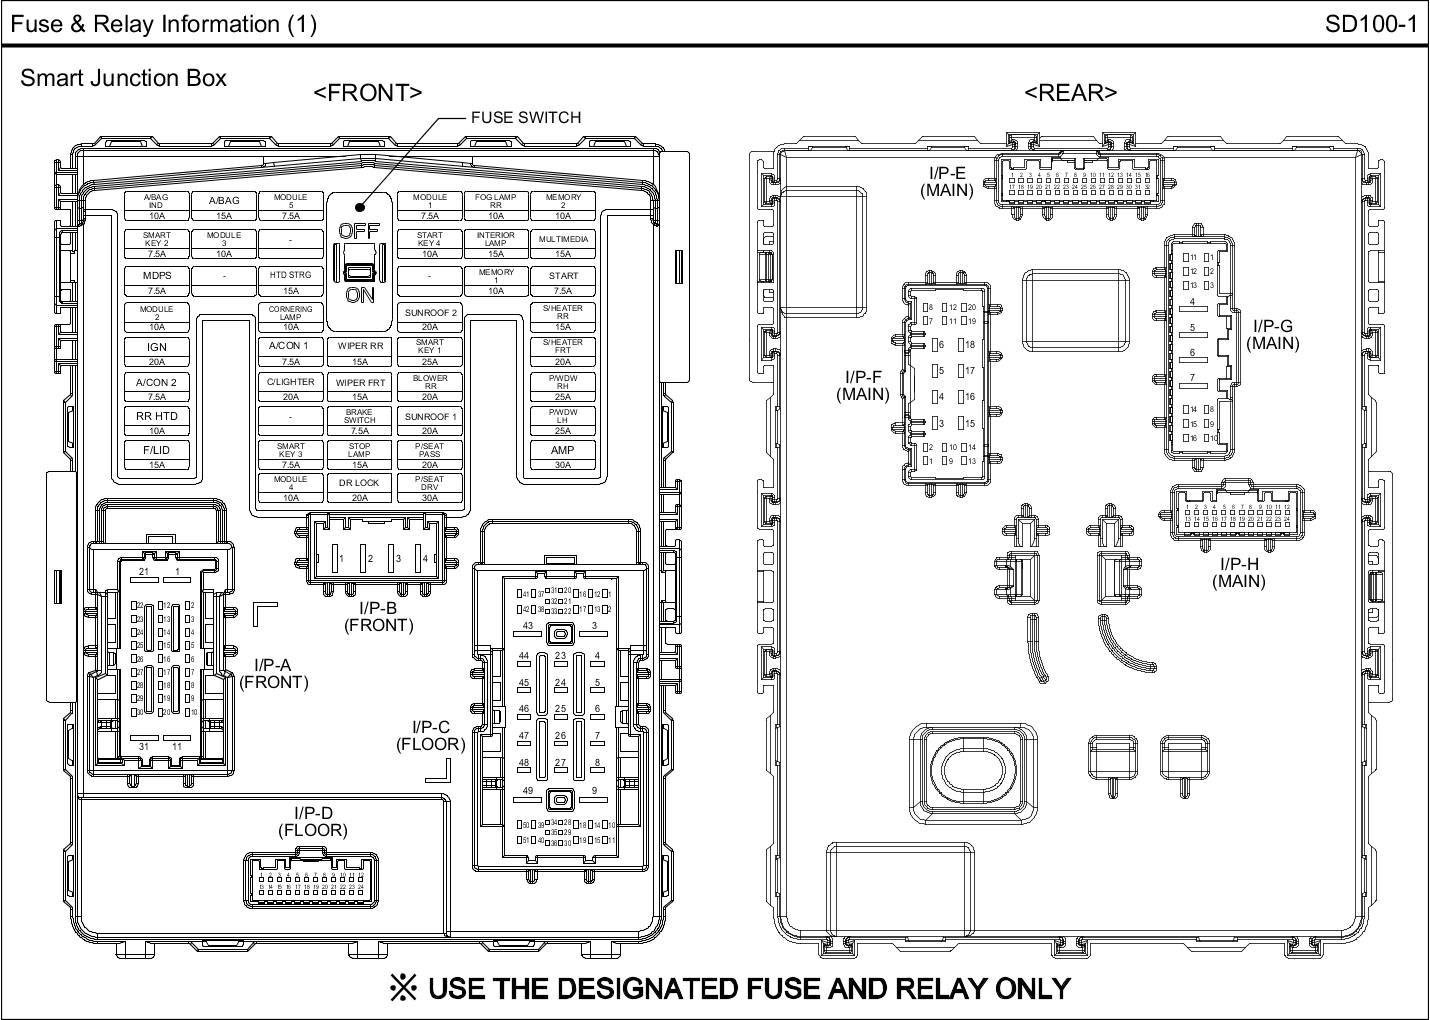 Wiring Diagram PDF: 2002 Hyundai Santa Fe Fuse Panel Diagram